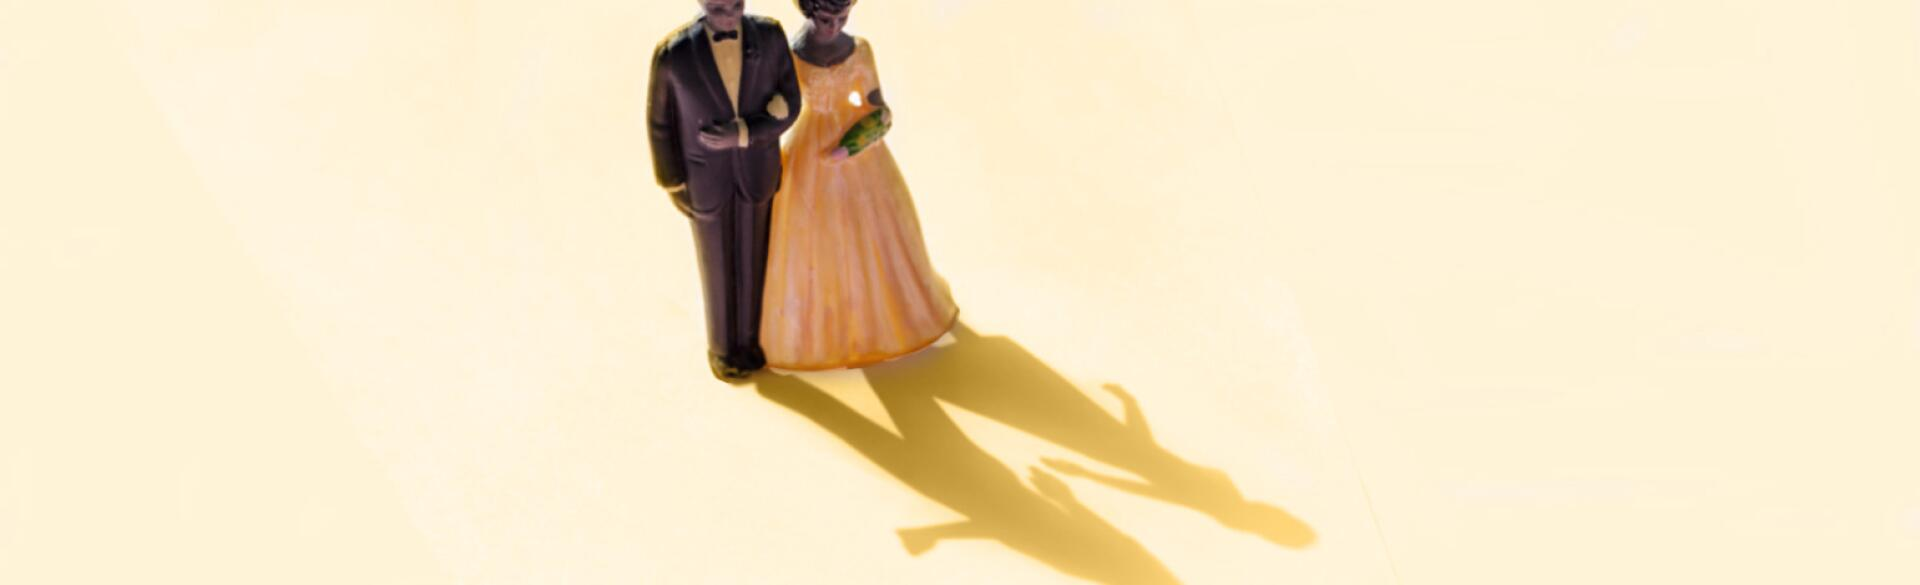 wedding cake topper of couple with shadow showing couple separate